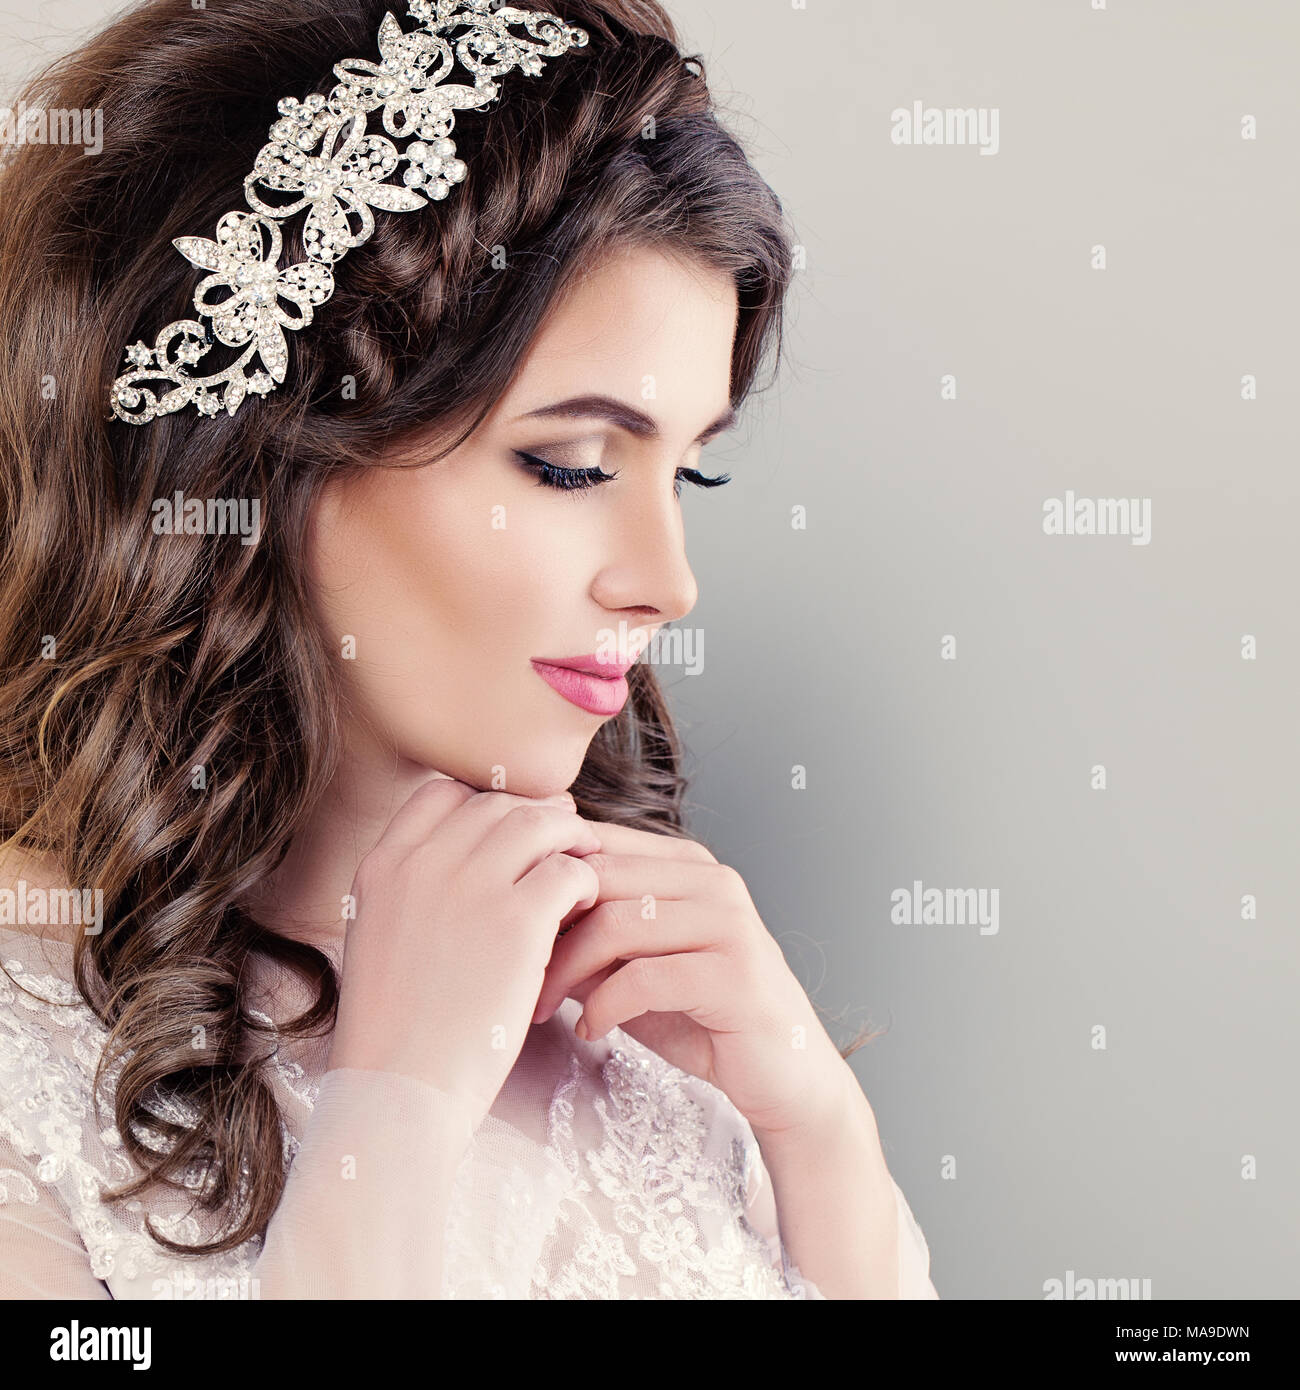 Beautiful Young Bride Stylish Woman Fiancee With Bridal Hairstyle